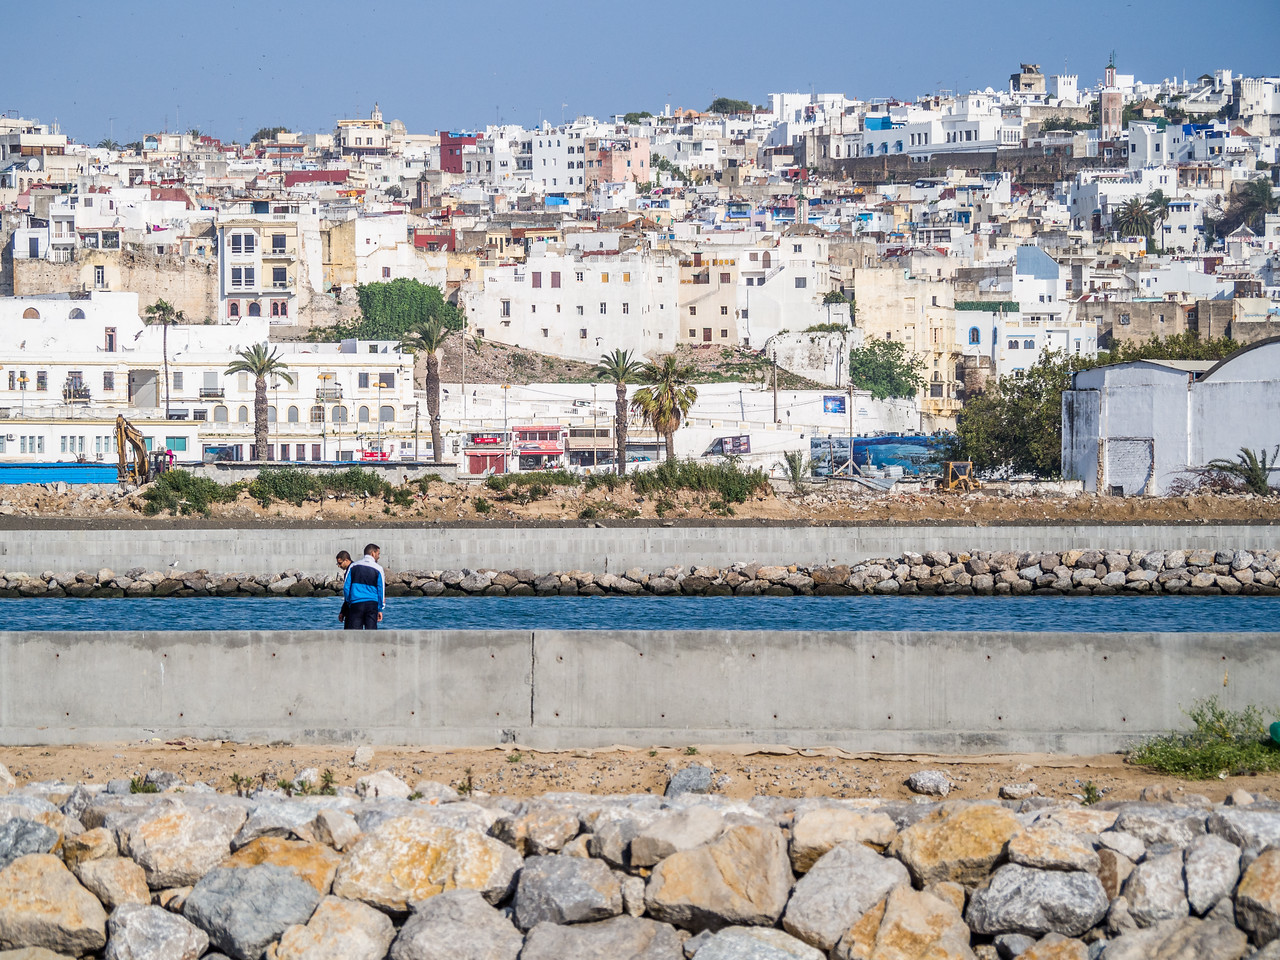 Layers along the Waterfront, Tangiers